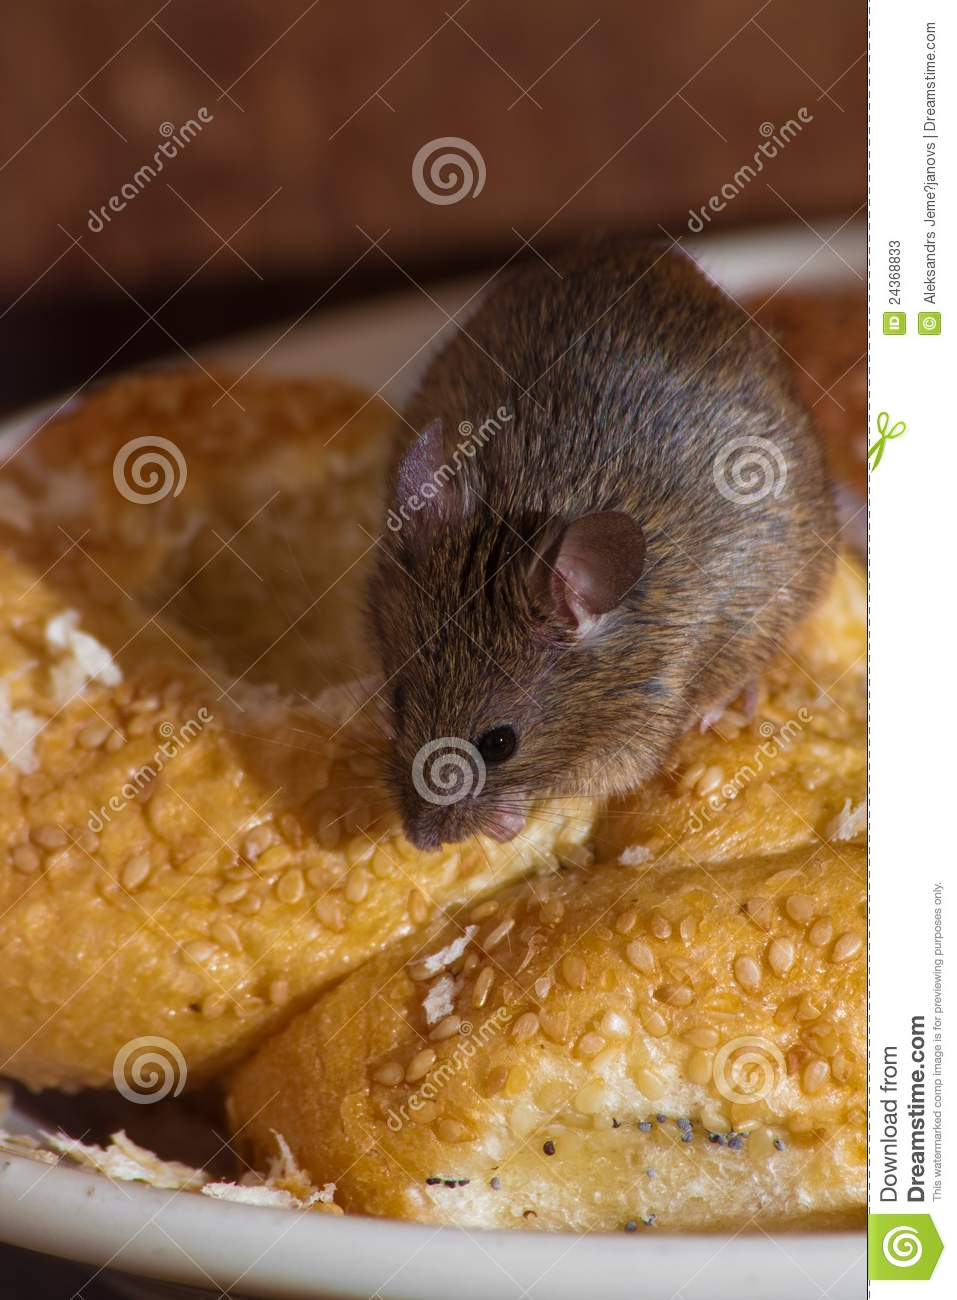 Mouse in the kitchen stock image. Image of kitchen, mice ...